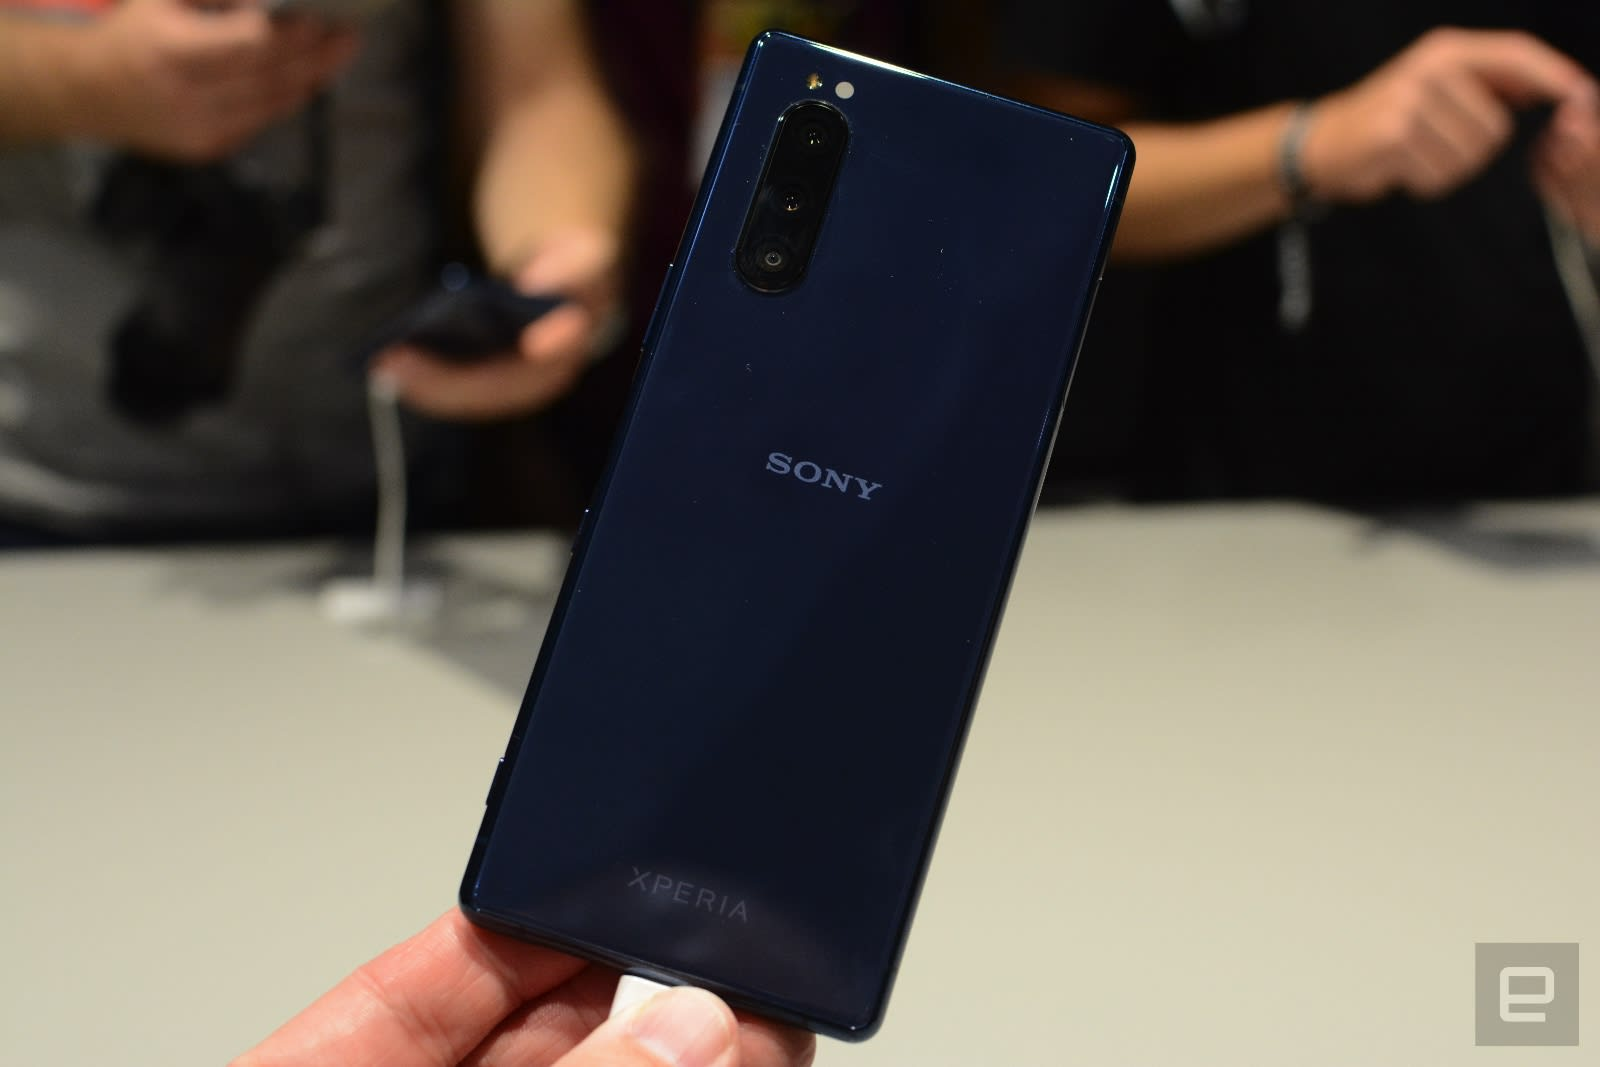 Sony's Xperia 5 isn't the triumphant return of the compact